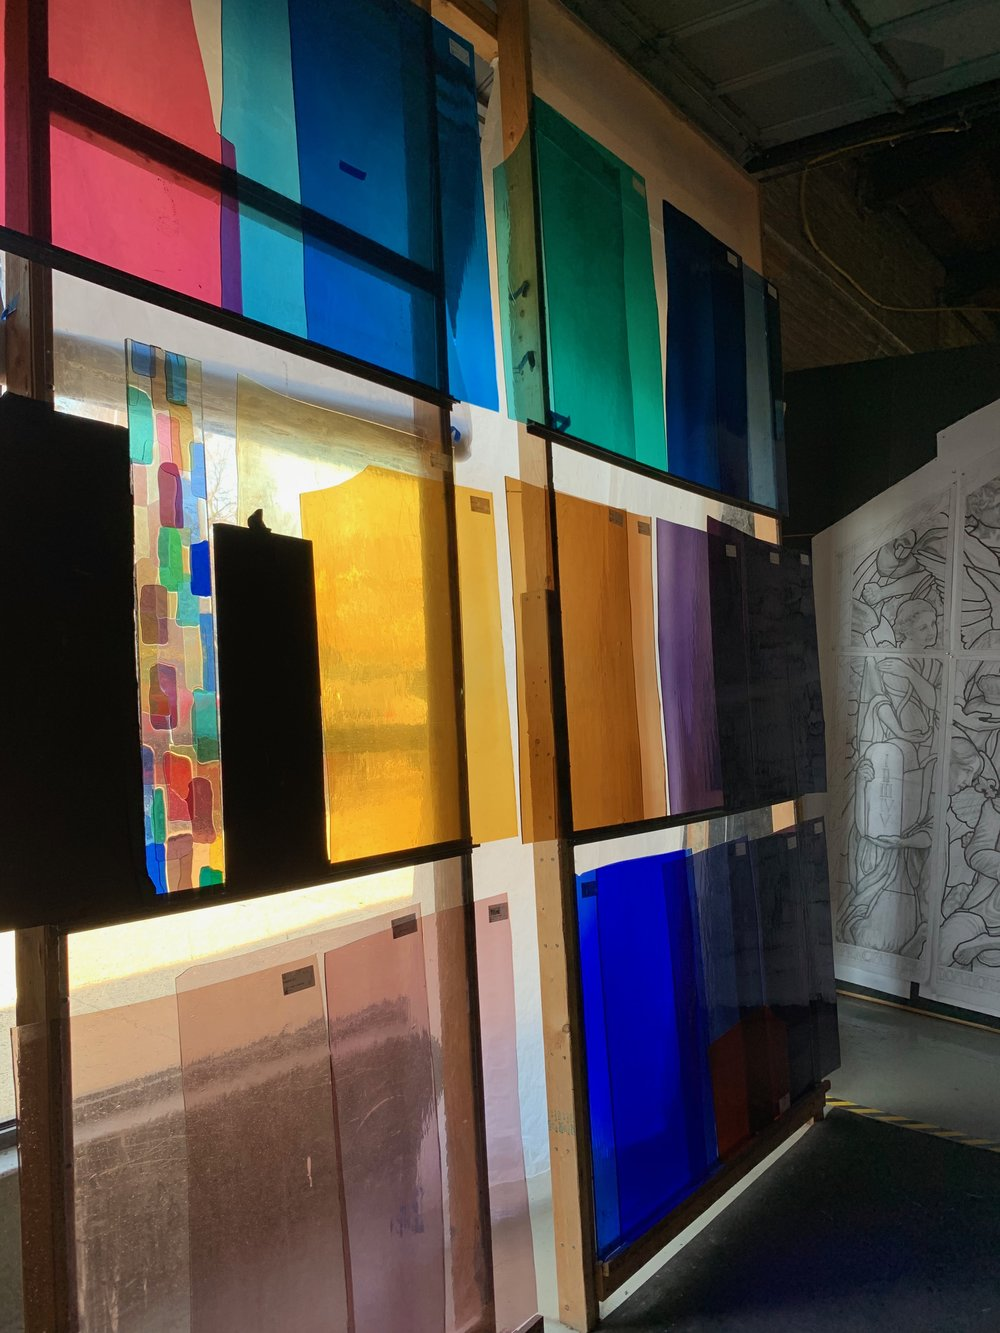 The stained glass windows in progress at Beyer Studio.